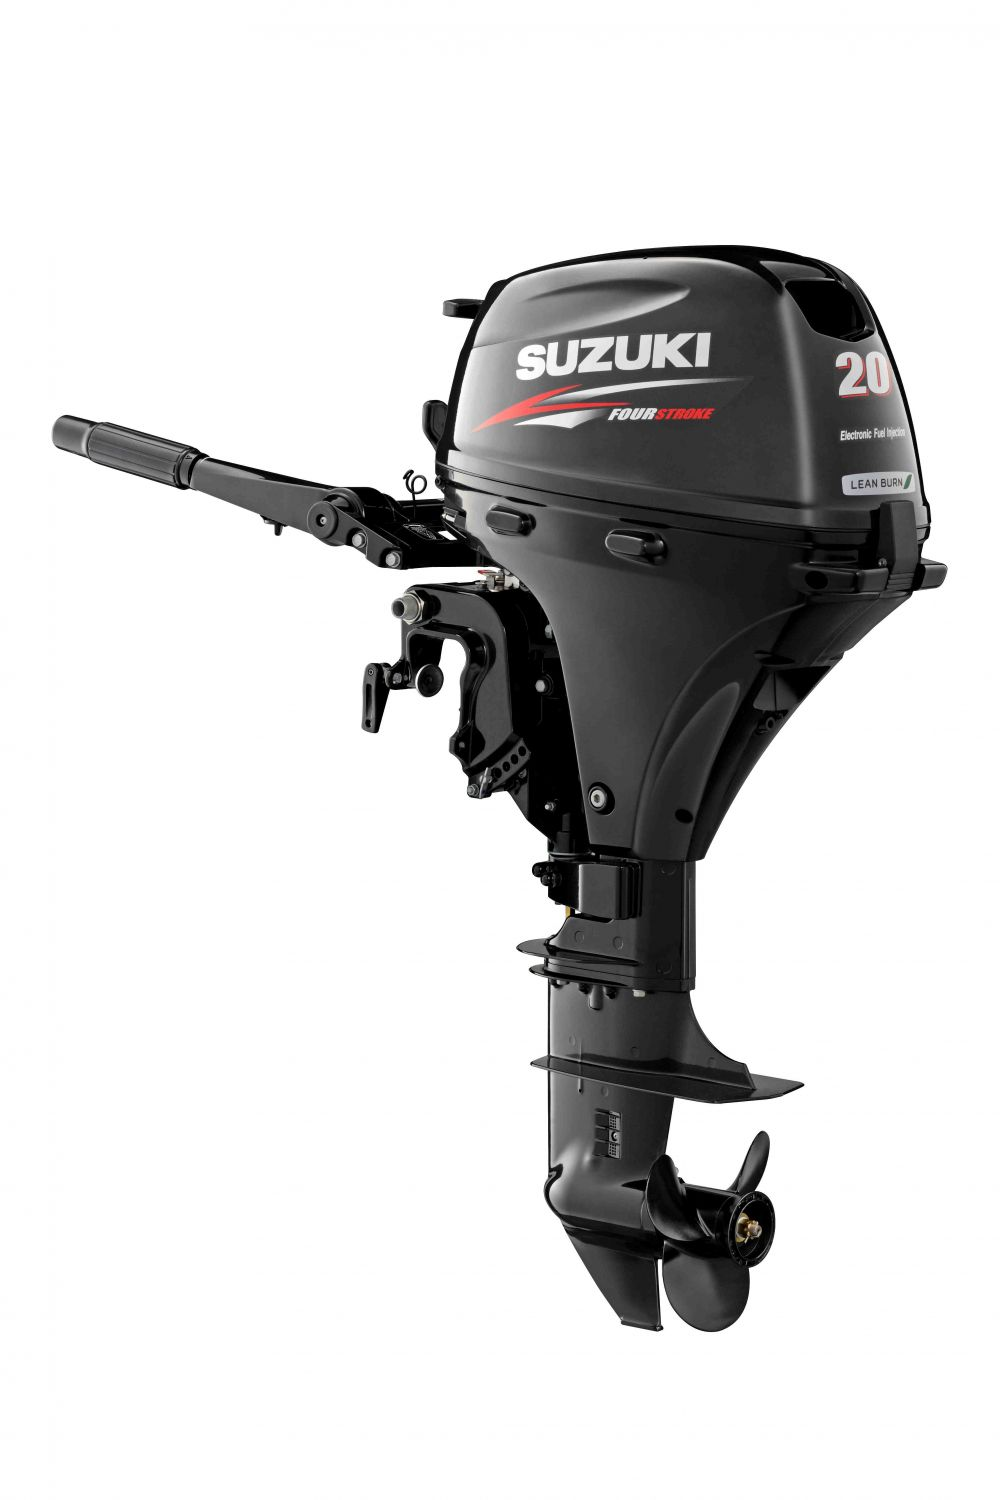 Suzuki DF20A four stroke marine outboard engine